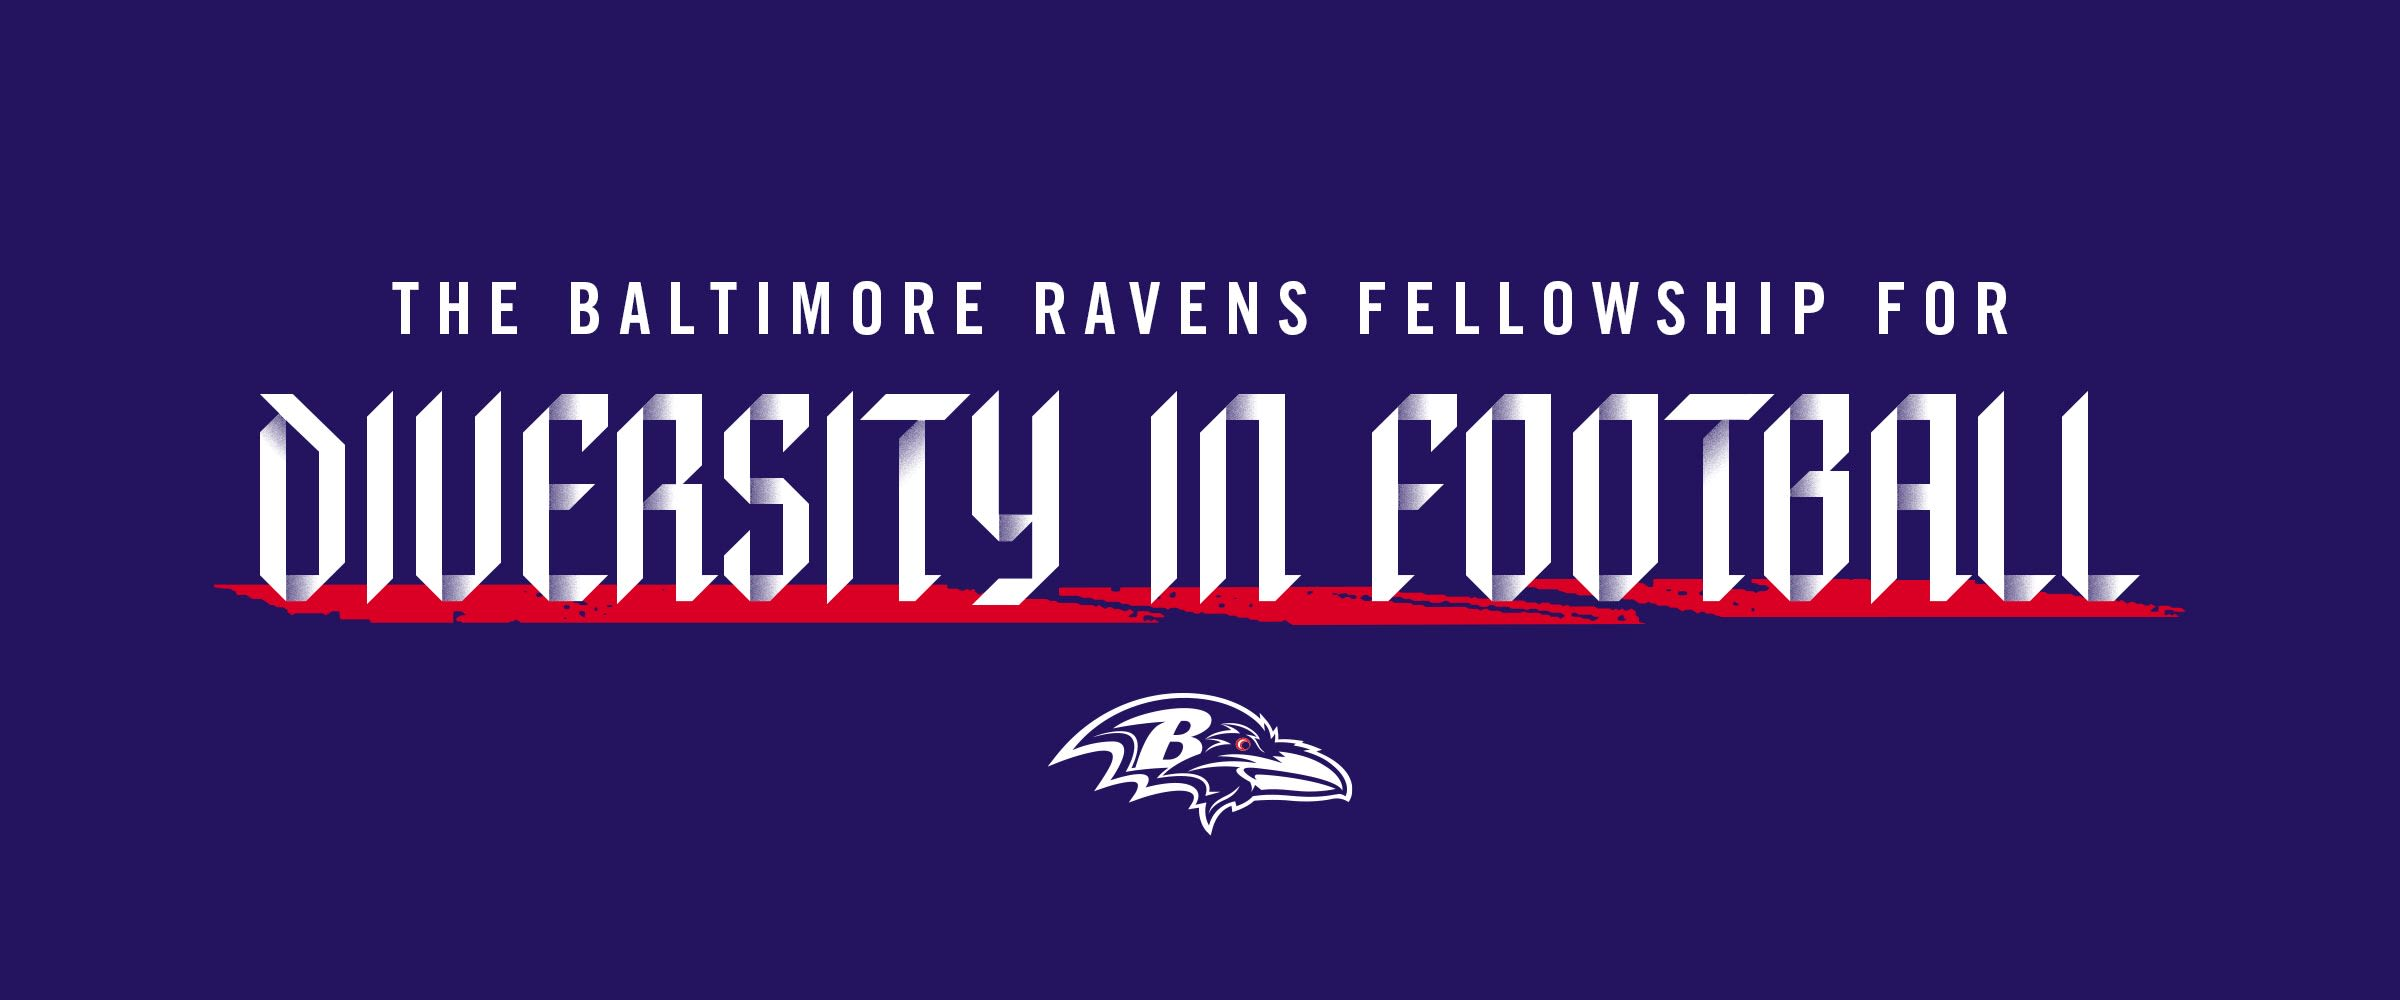 The Baltimore Ravens fellowship for Diversity in Football